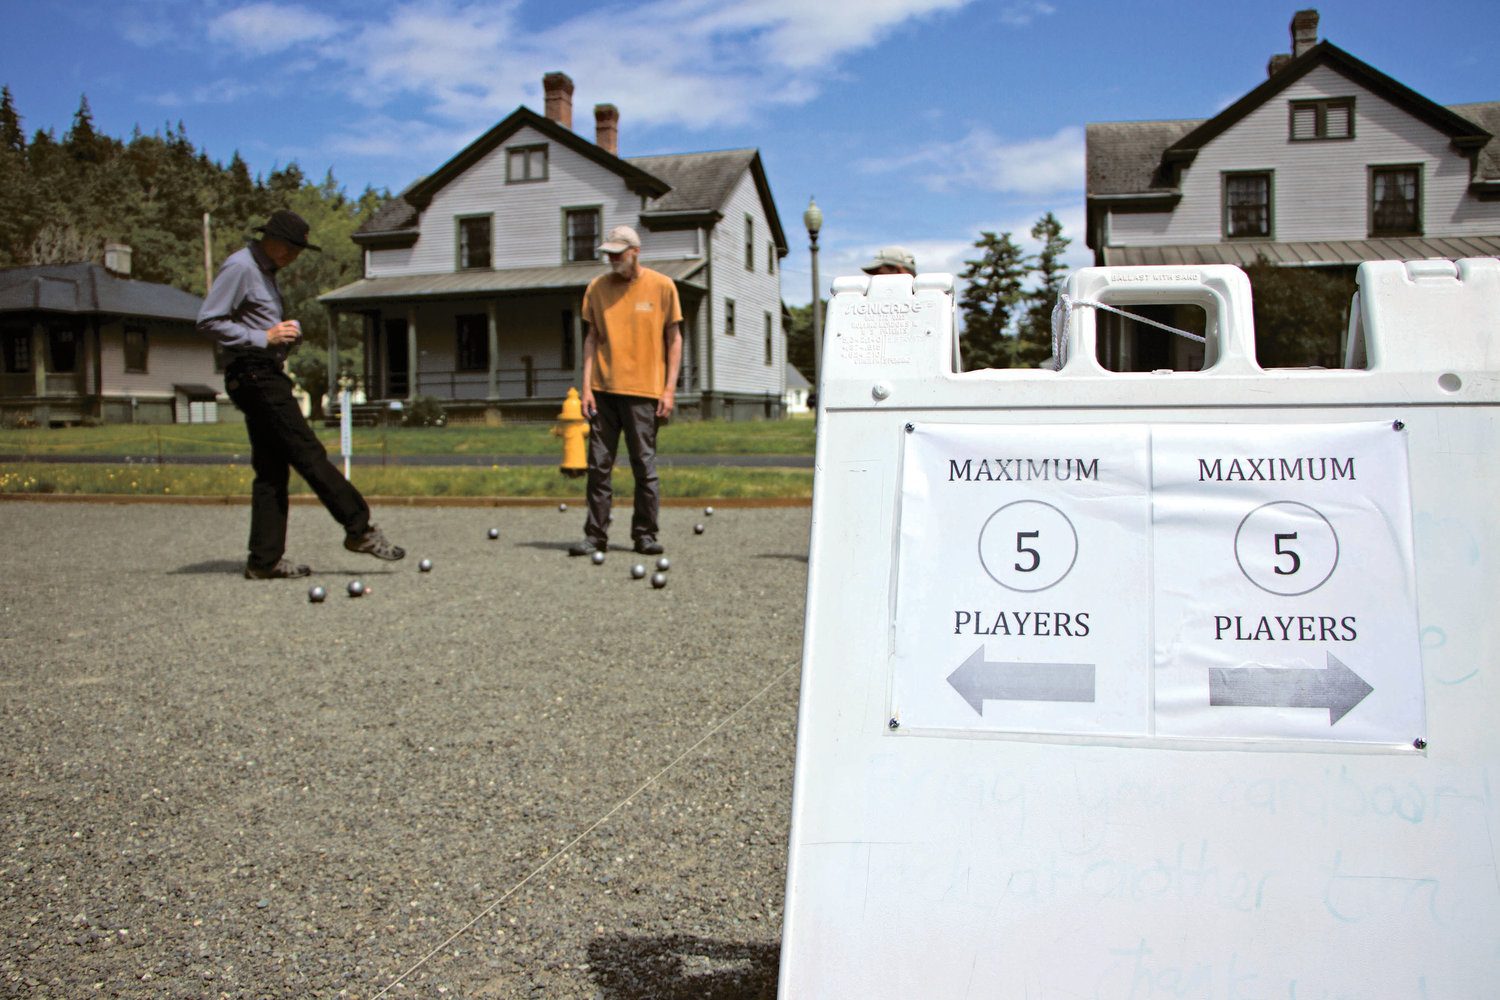 Among the COVID-19 protocols adopted by the Port Townsend Pétanque Alliance to continue play is the rule that no more than five players may be on one court at any time.